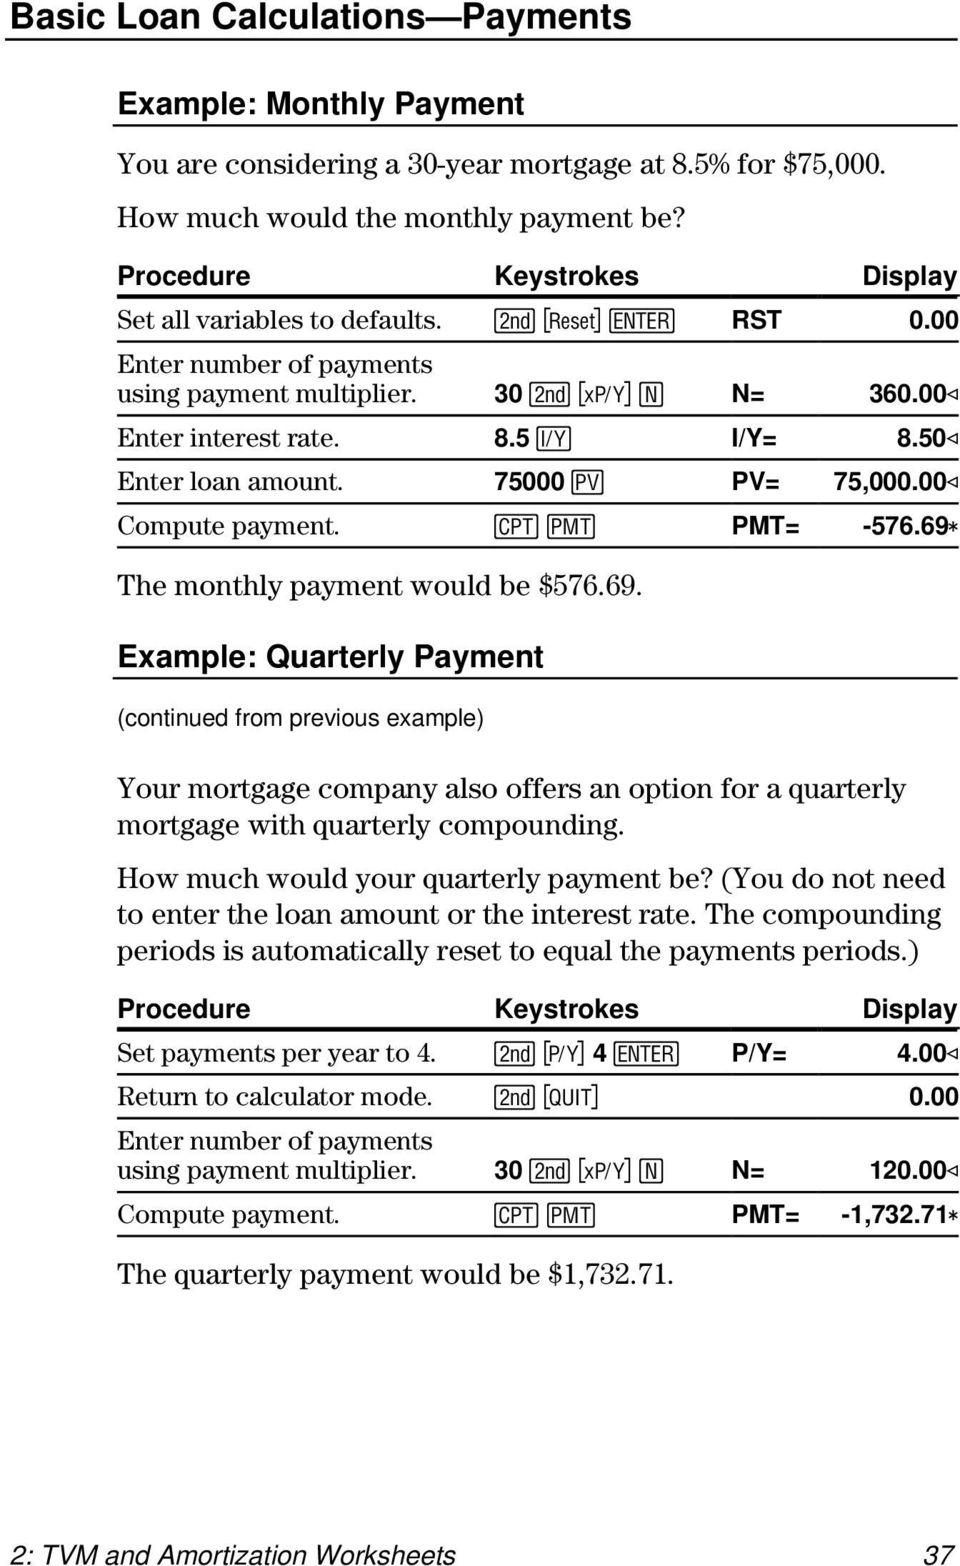 69 The monthly payment would be $576.69. Example: Quarterly Payment (continued from previous example) Your mortgage company also offers an option for a quarterly mortgage with quarterly compounding.